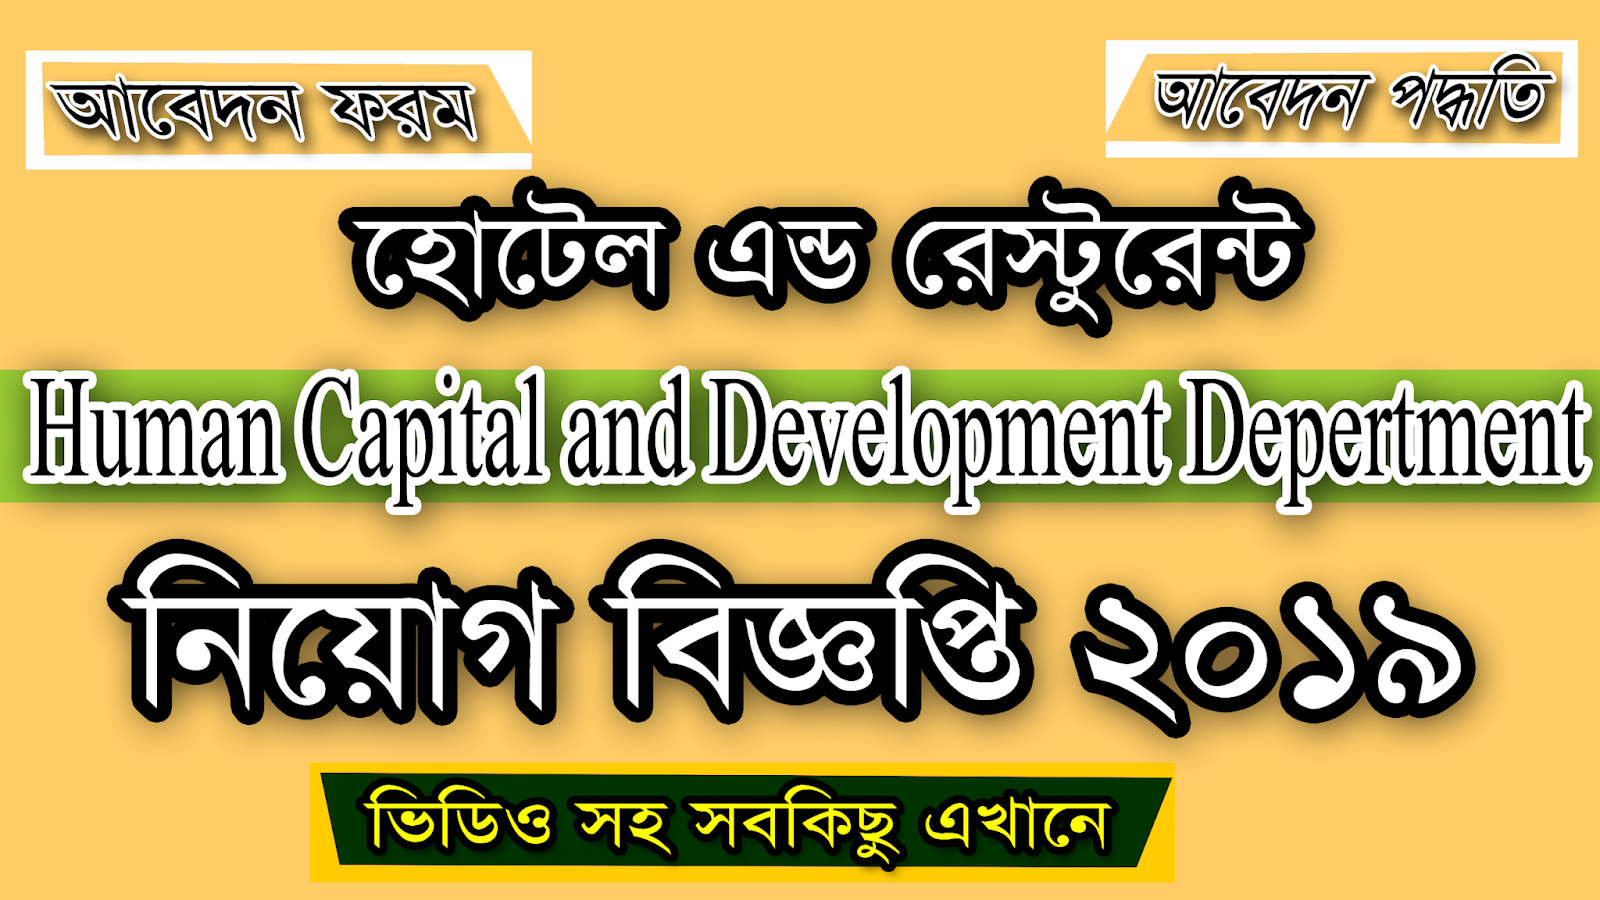 Hotel And Restaurant Job At Human Capital And Development